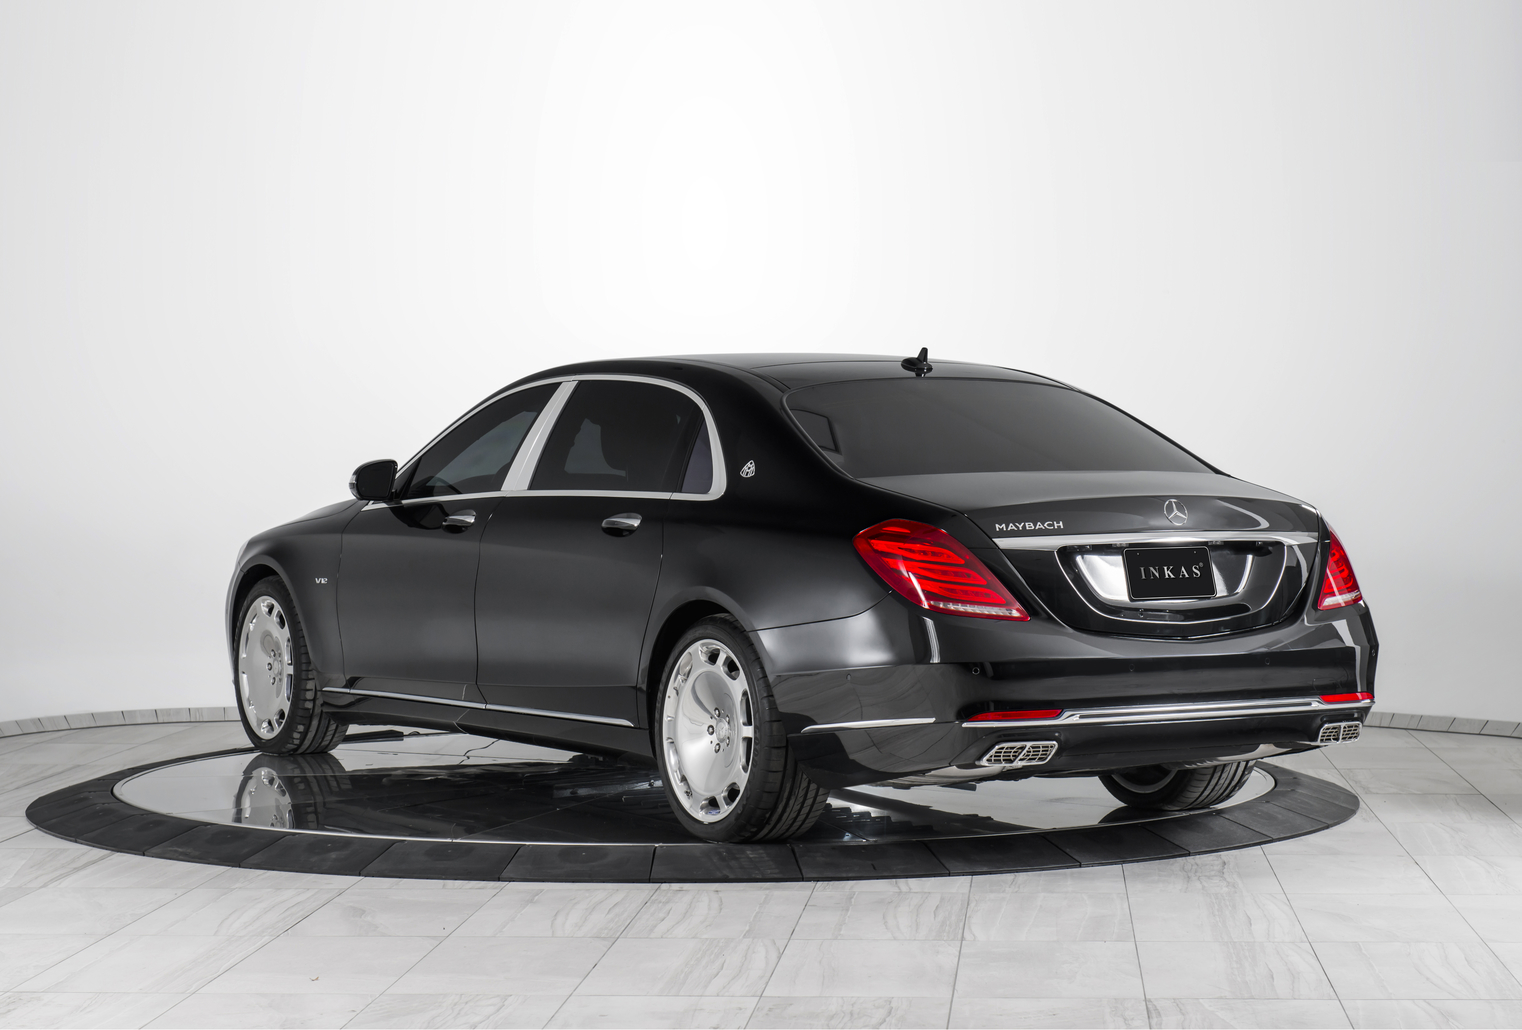 2016-Mercedes-Maybach-S600-Inkas